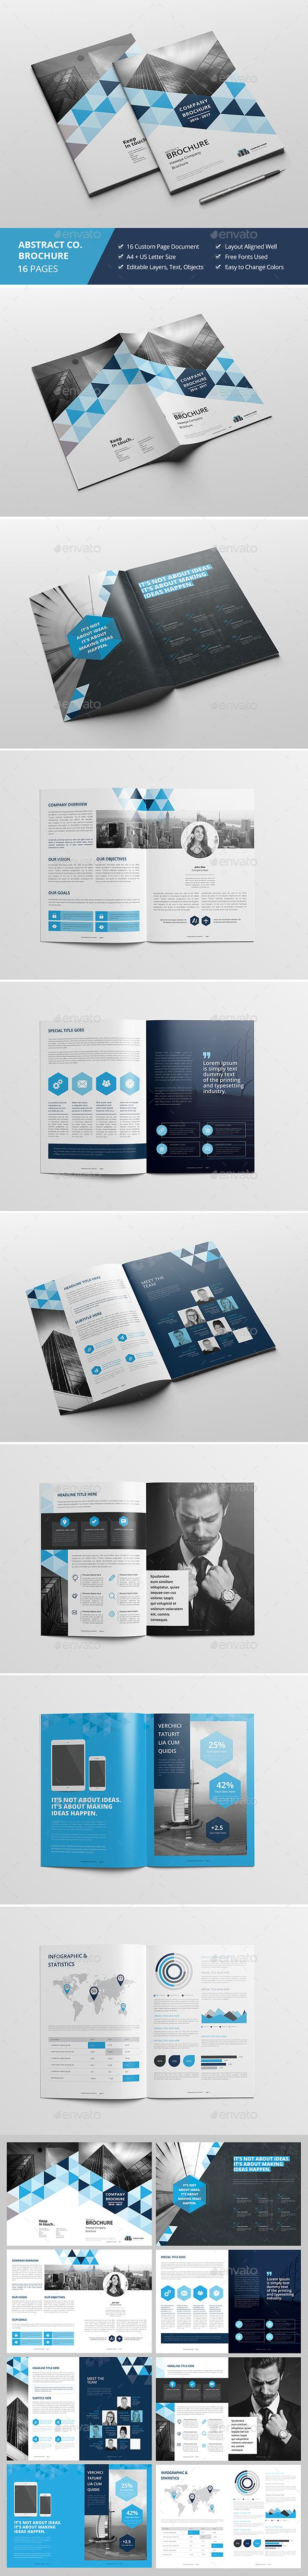 Haweya Abstract Portrait Brochure Template InDesign INDD. Download here: https://graphicriver.net/item/haweya-abstract-portrait-brochure/17514560?ref=ksioks